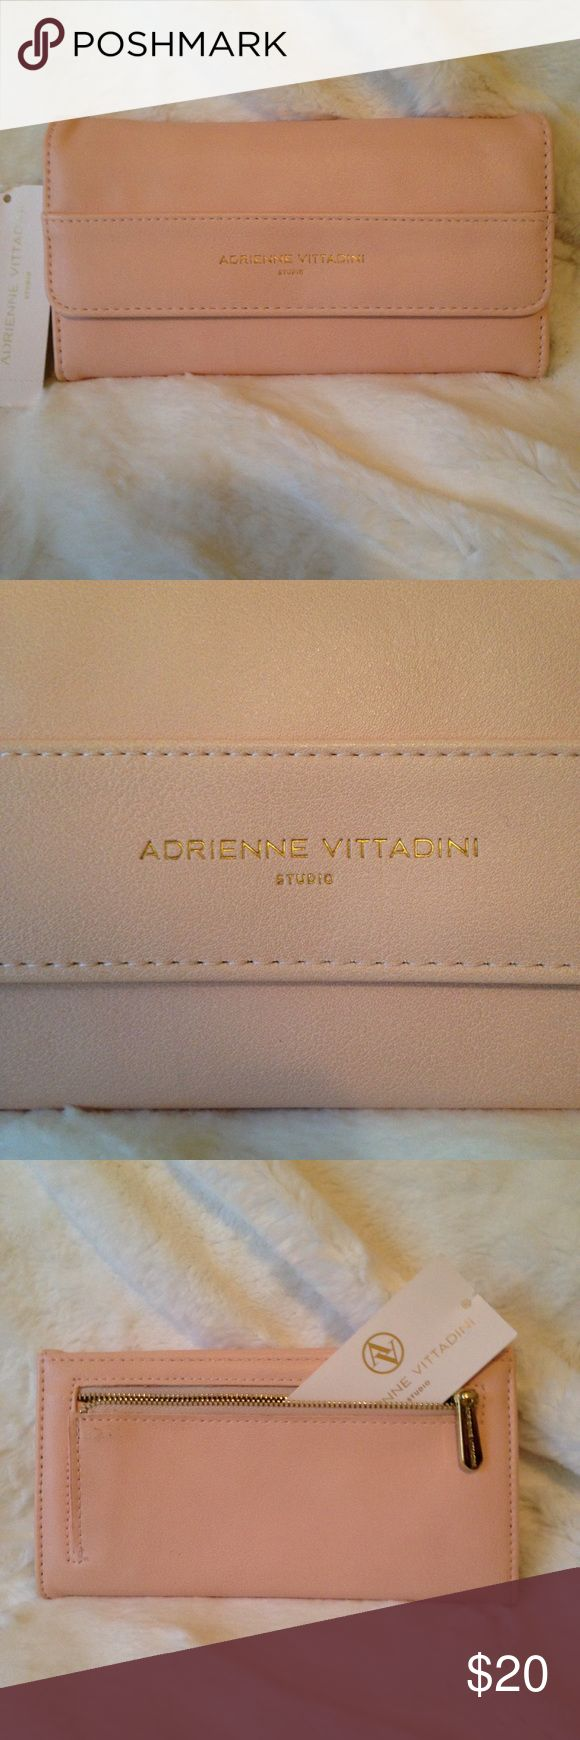 NWT ADRIENNE VITTADINI Wallet Gorgeous Spring Color! Blush ADRIENNE VITTADINI Wallet Features ID Slot 12 Credit Card Slots 4 Bill Slots and 2 Coin Pockets Adrienne Vittadini Bags Wallets